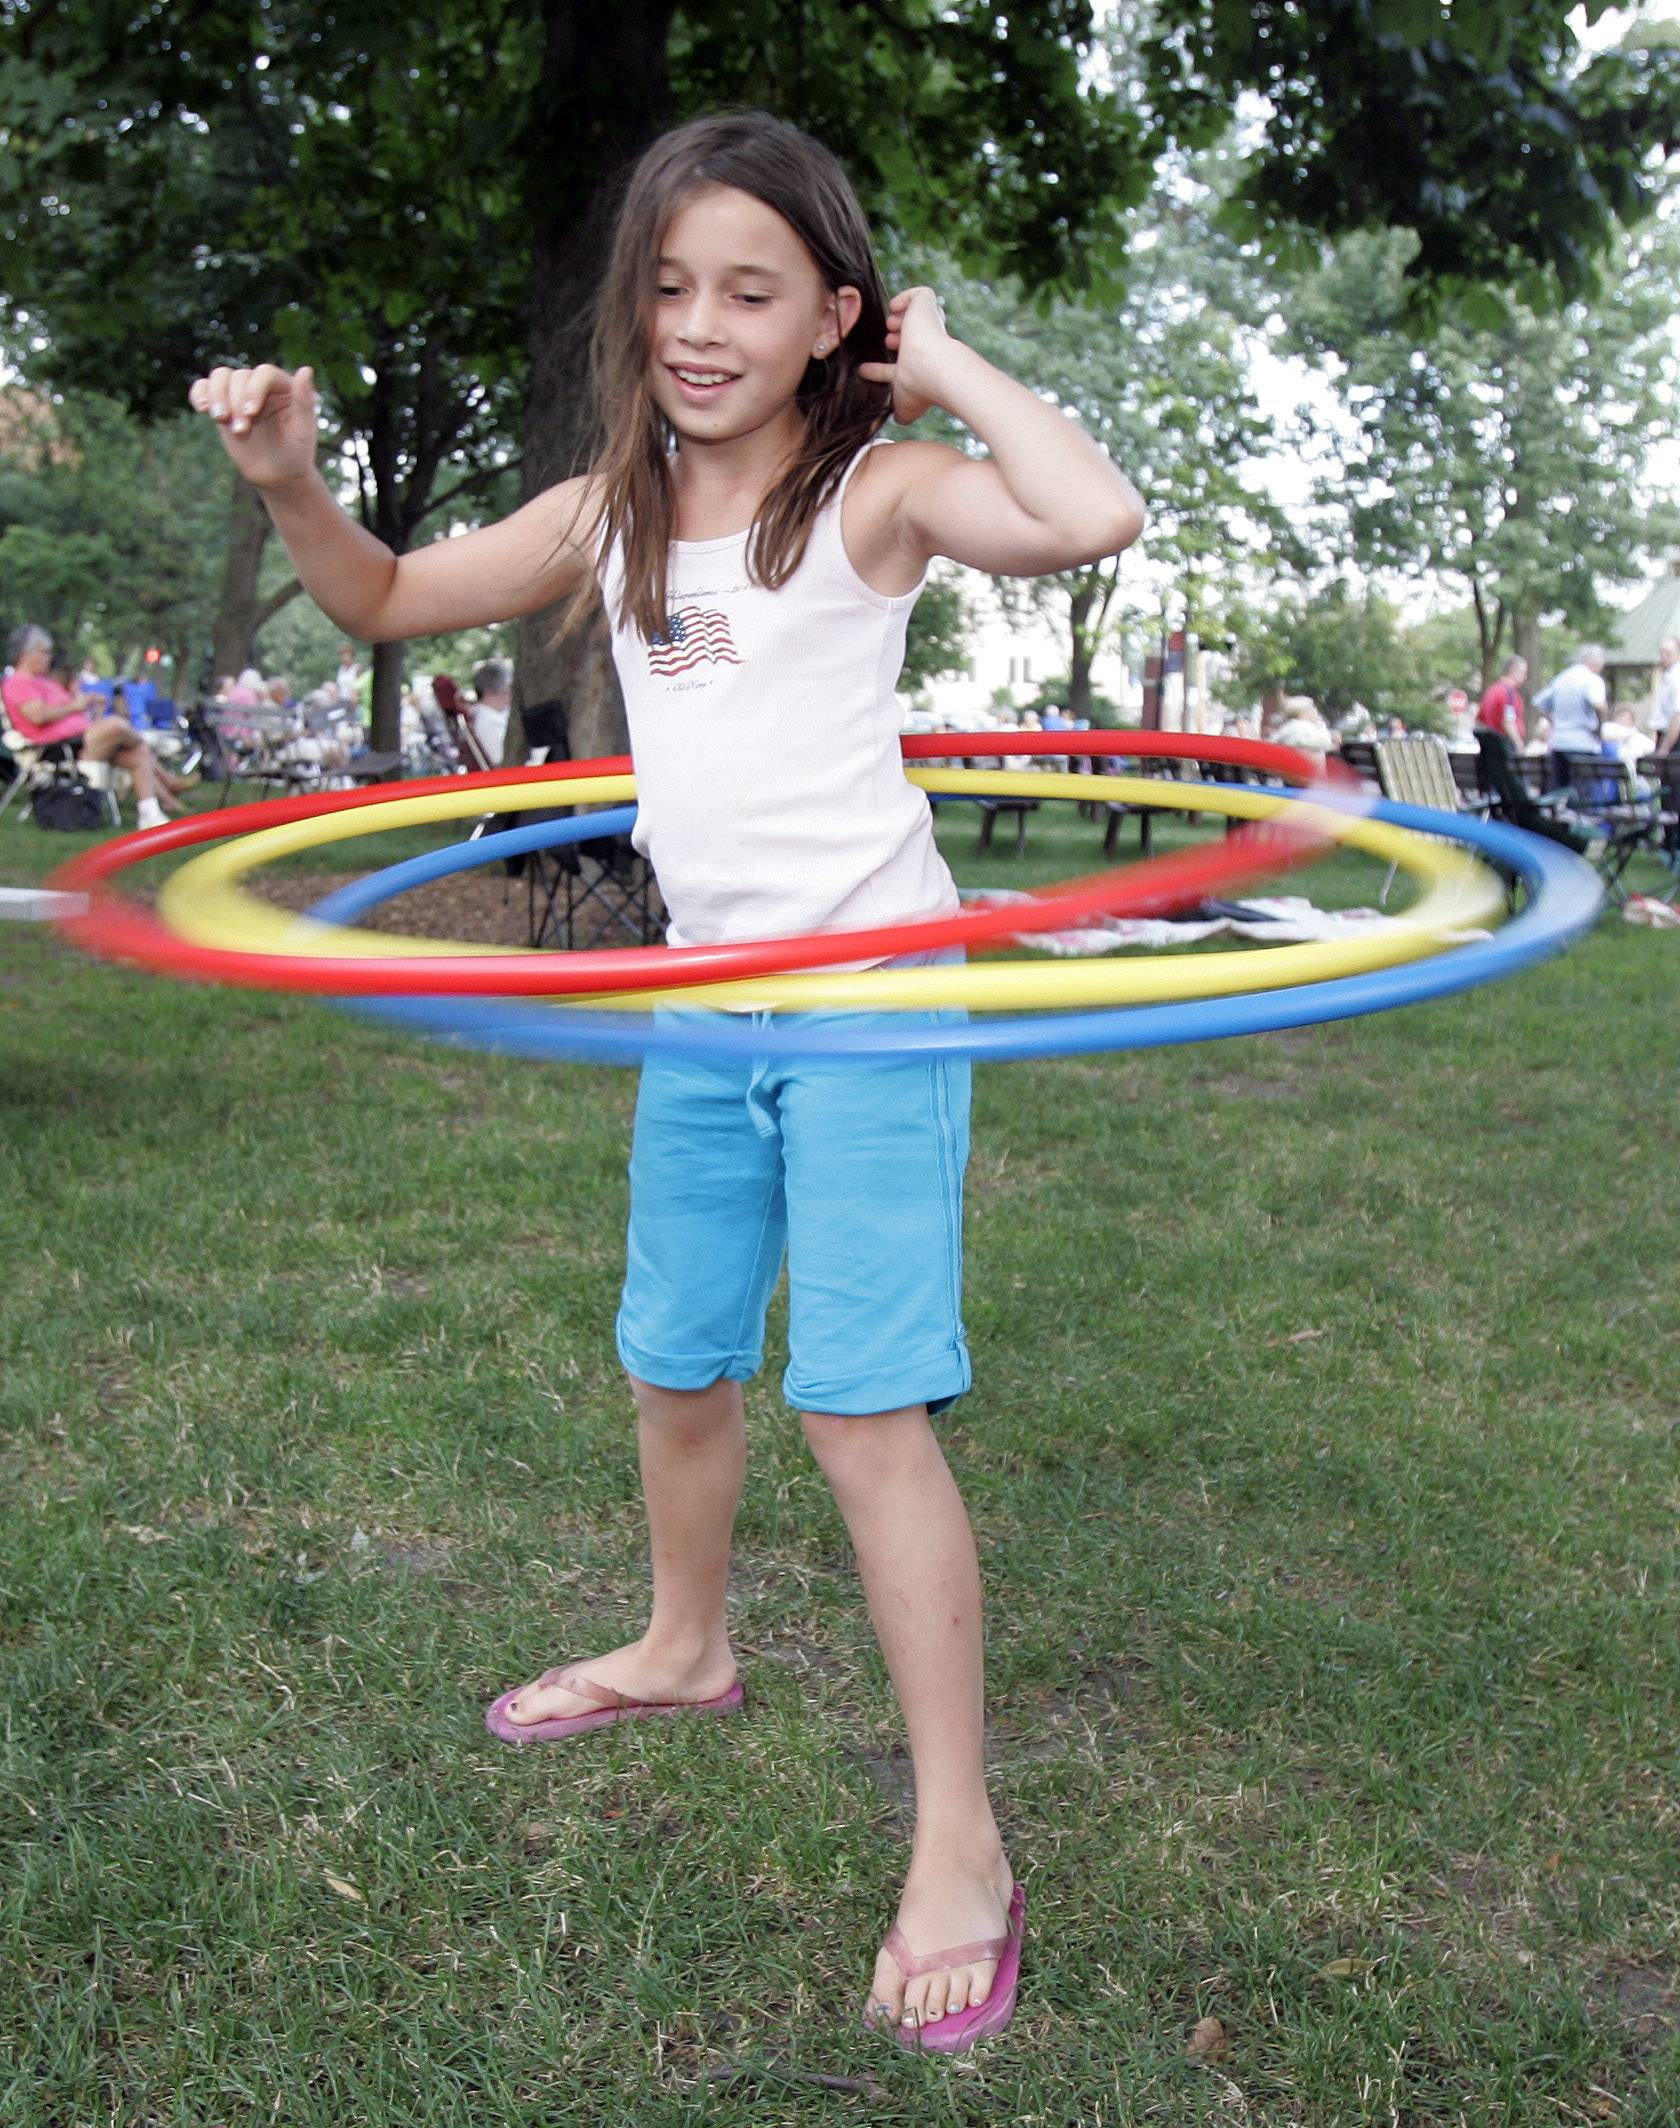 Hoola-hooping still remains popular today.